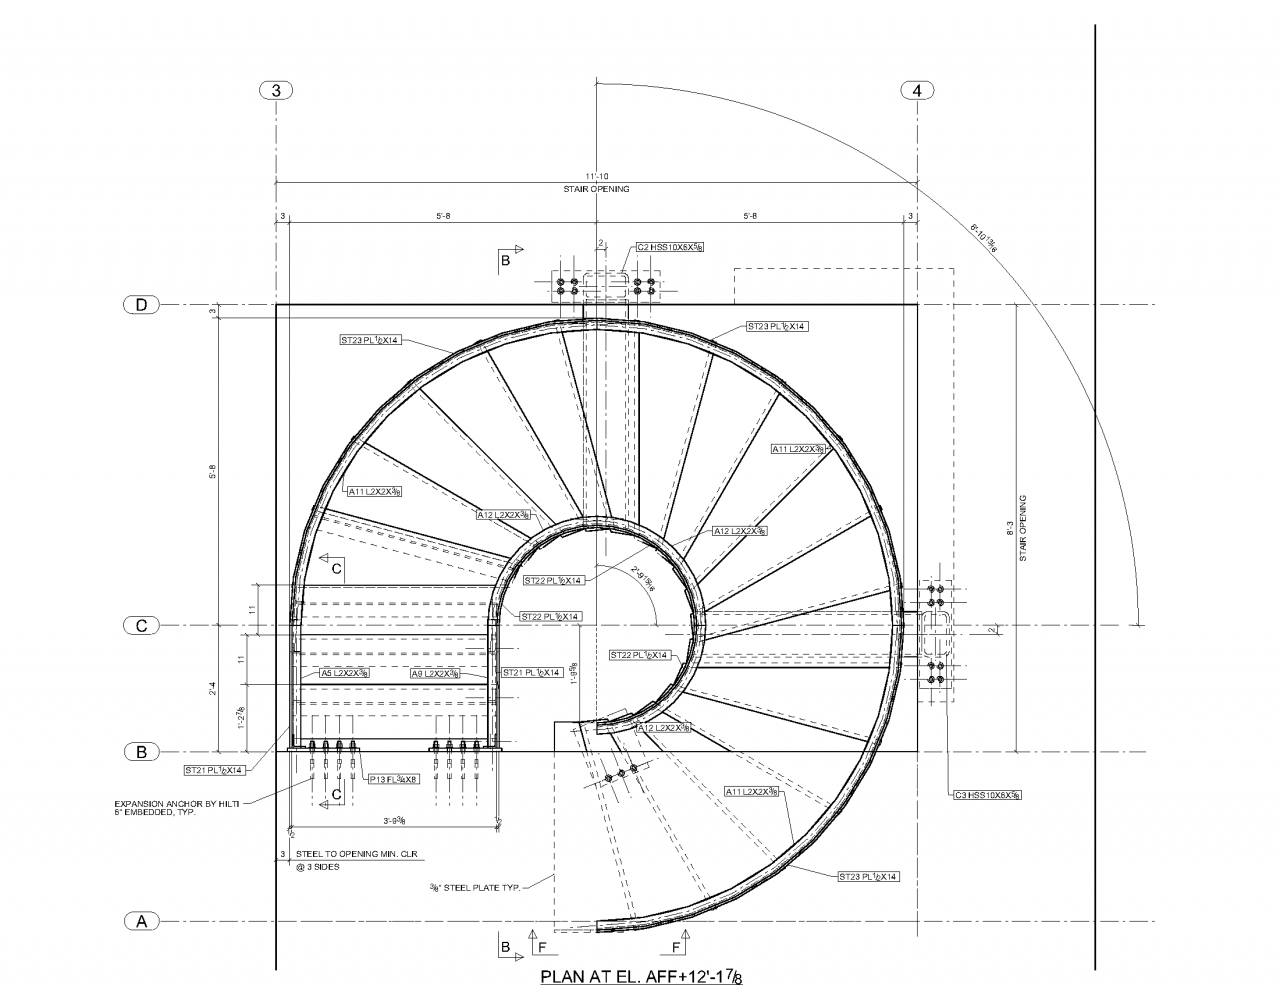 Circular Stair 101 Warren Street New York Ny Plan